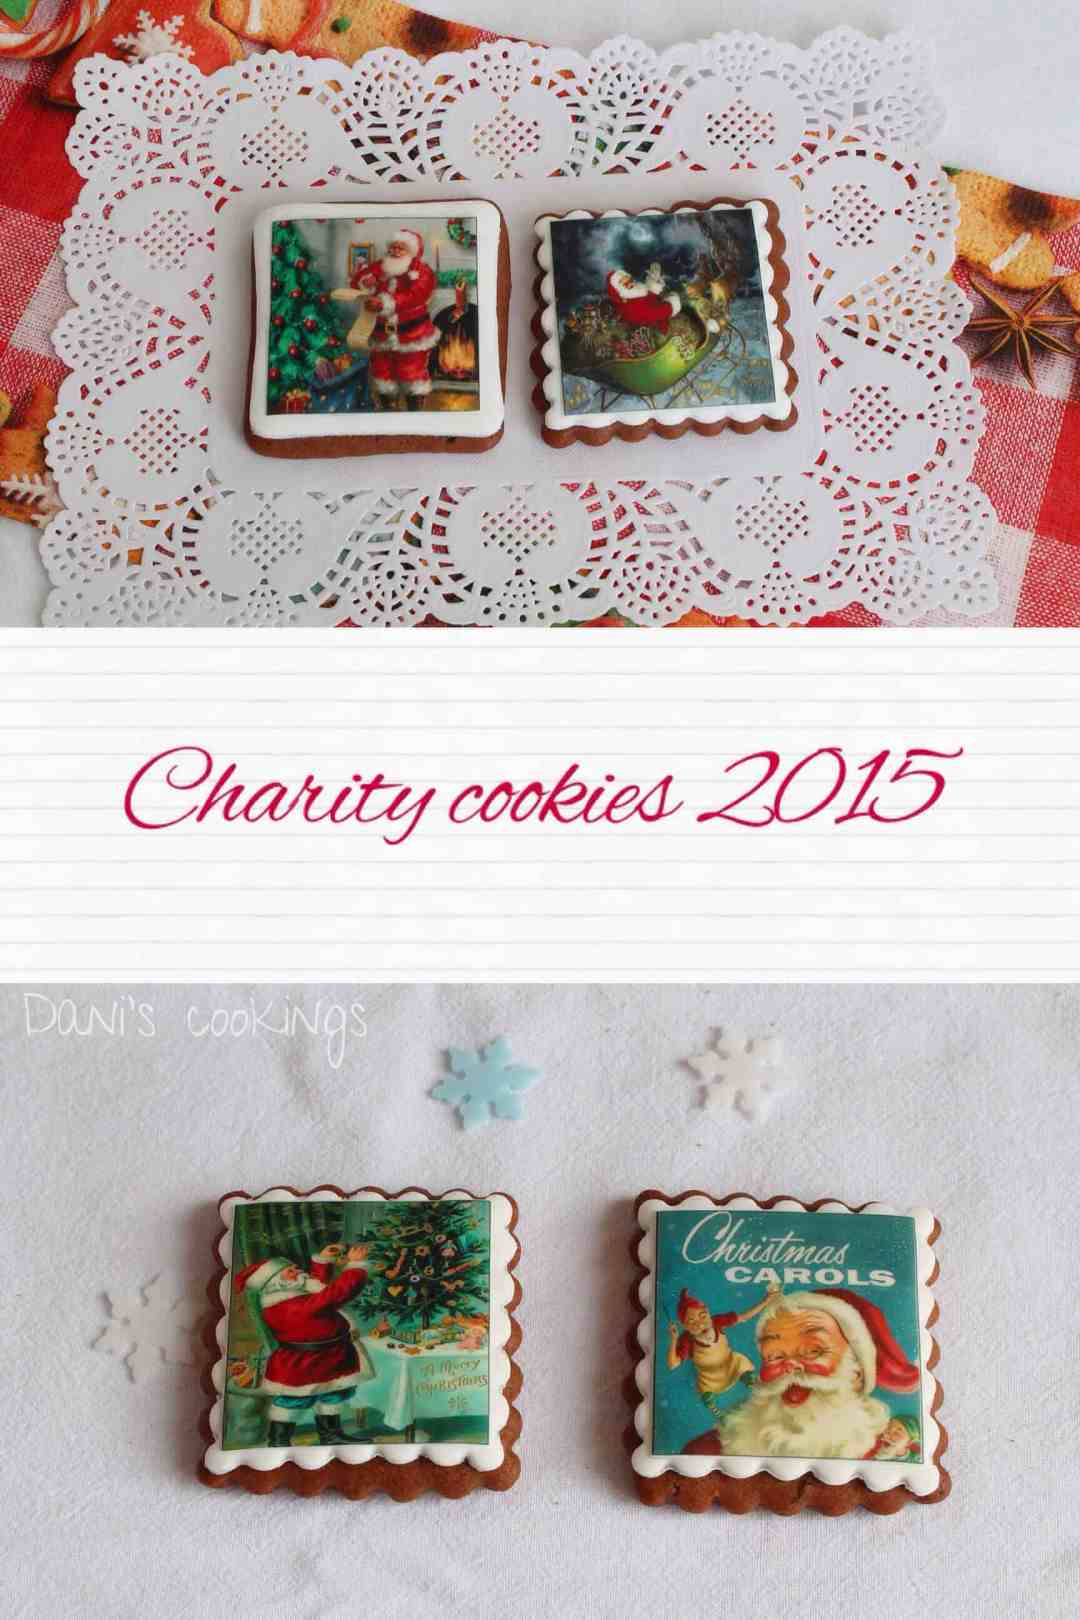 Christmas honey cookies decorated with edible prints - daniscookings.wordpress.com